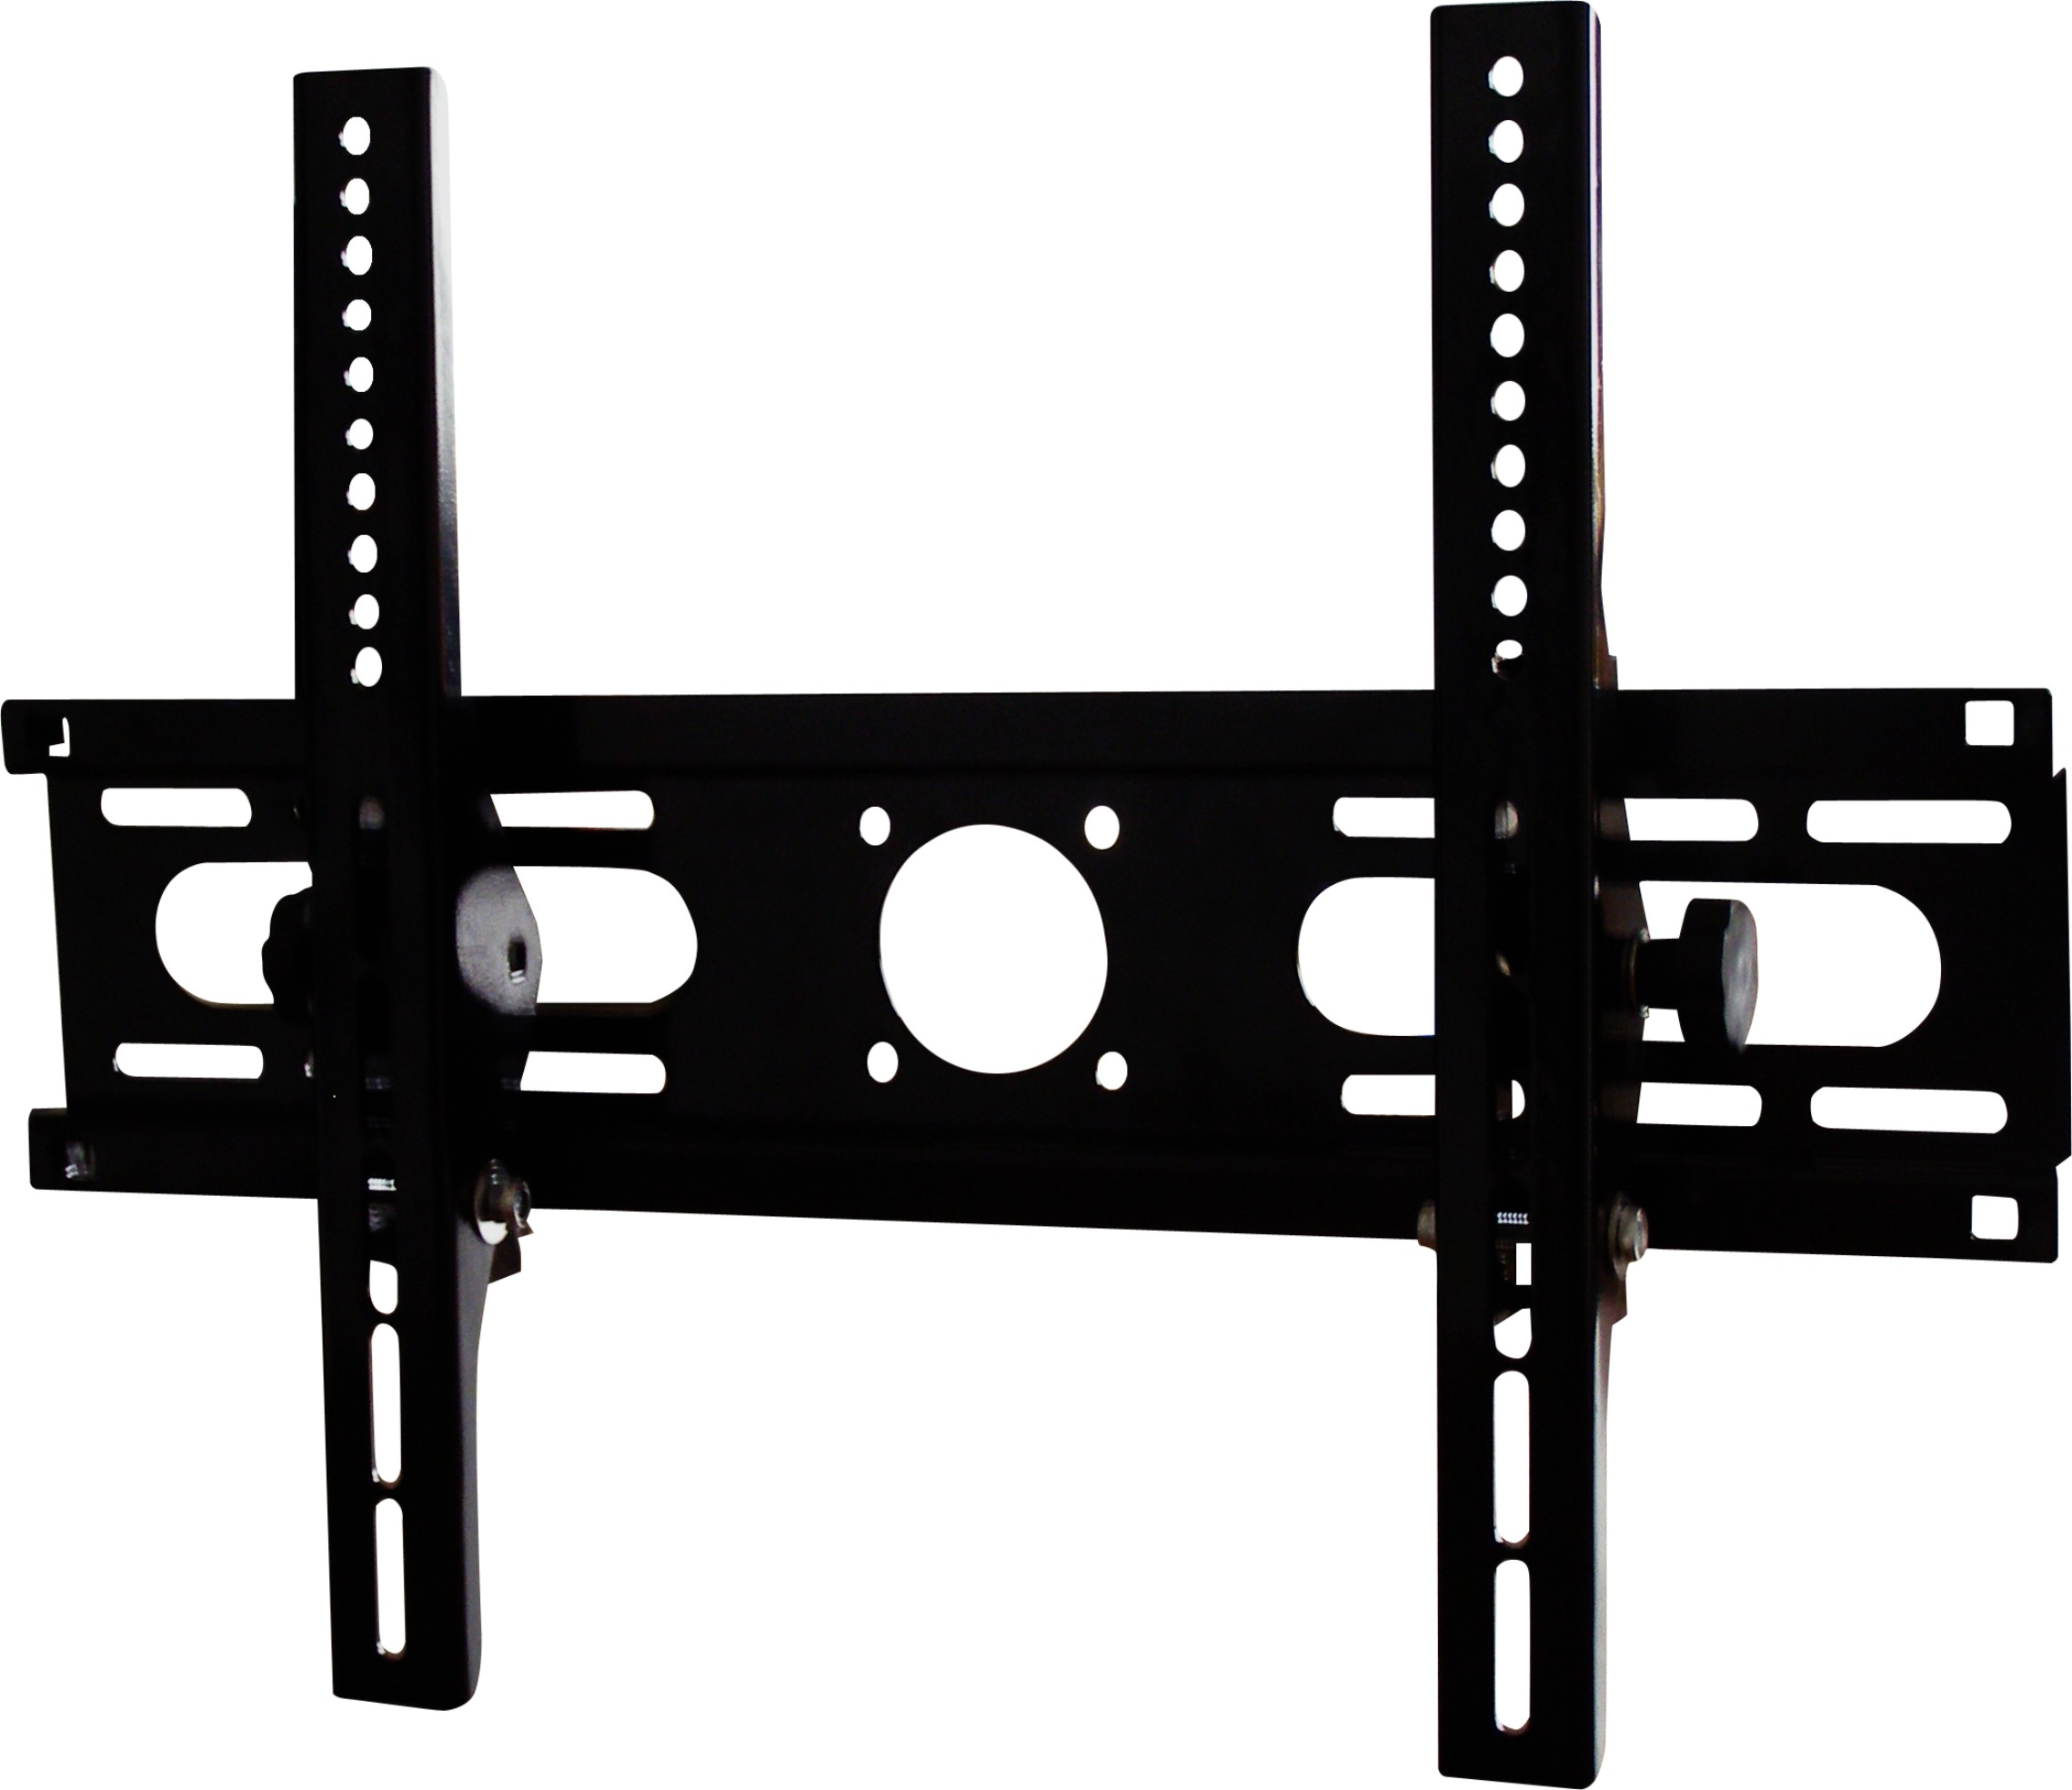 Wall Mounting Bracket For 2442 inch screen